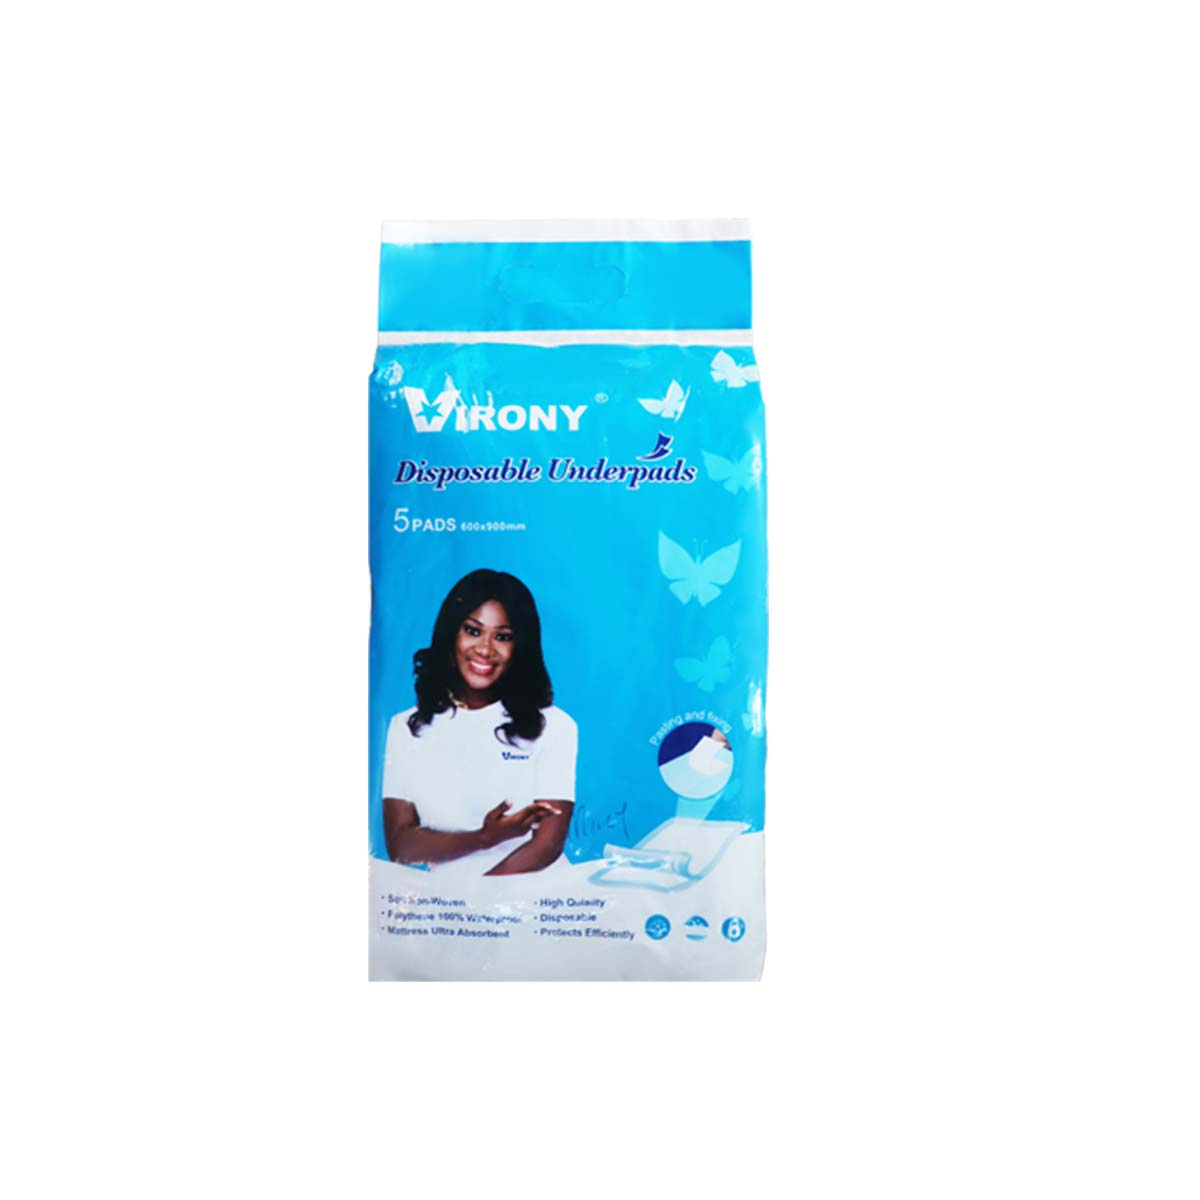 Virony Disposable Underpads 600 x 900mm x 5 Pads